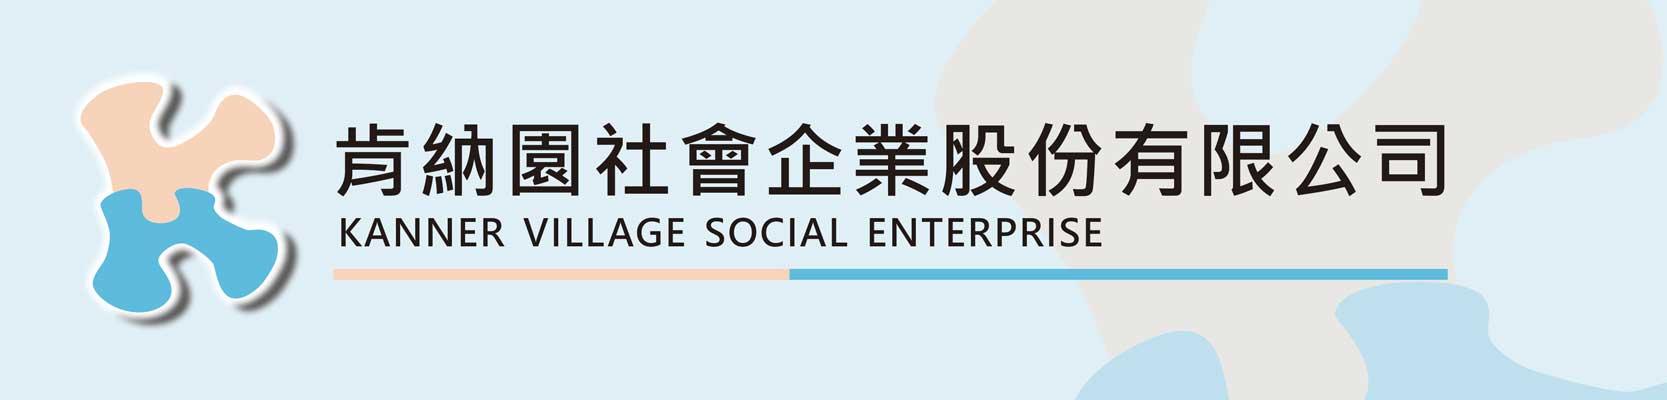 肯納園社會企業 Kanner Village Social Enterprise